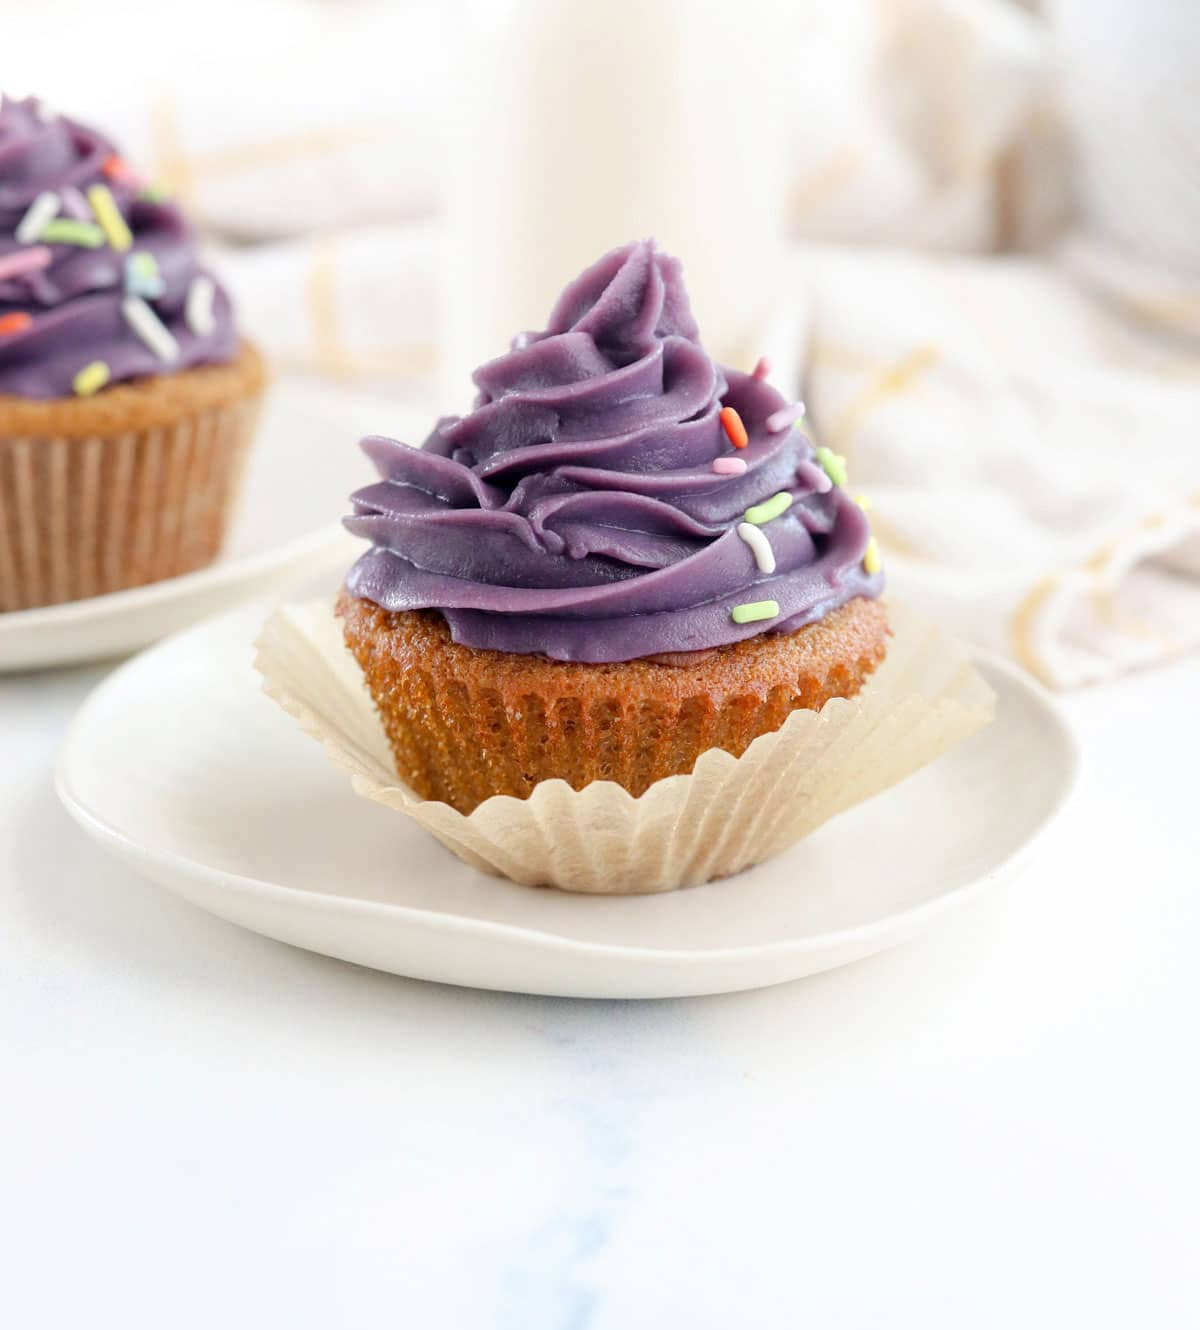 purple sweet potato frosting piped onto cupcake